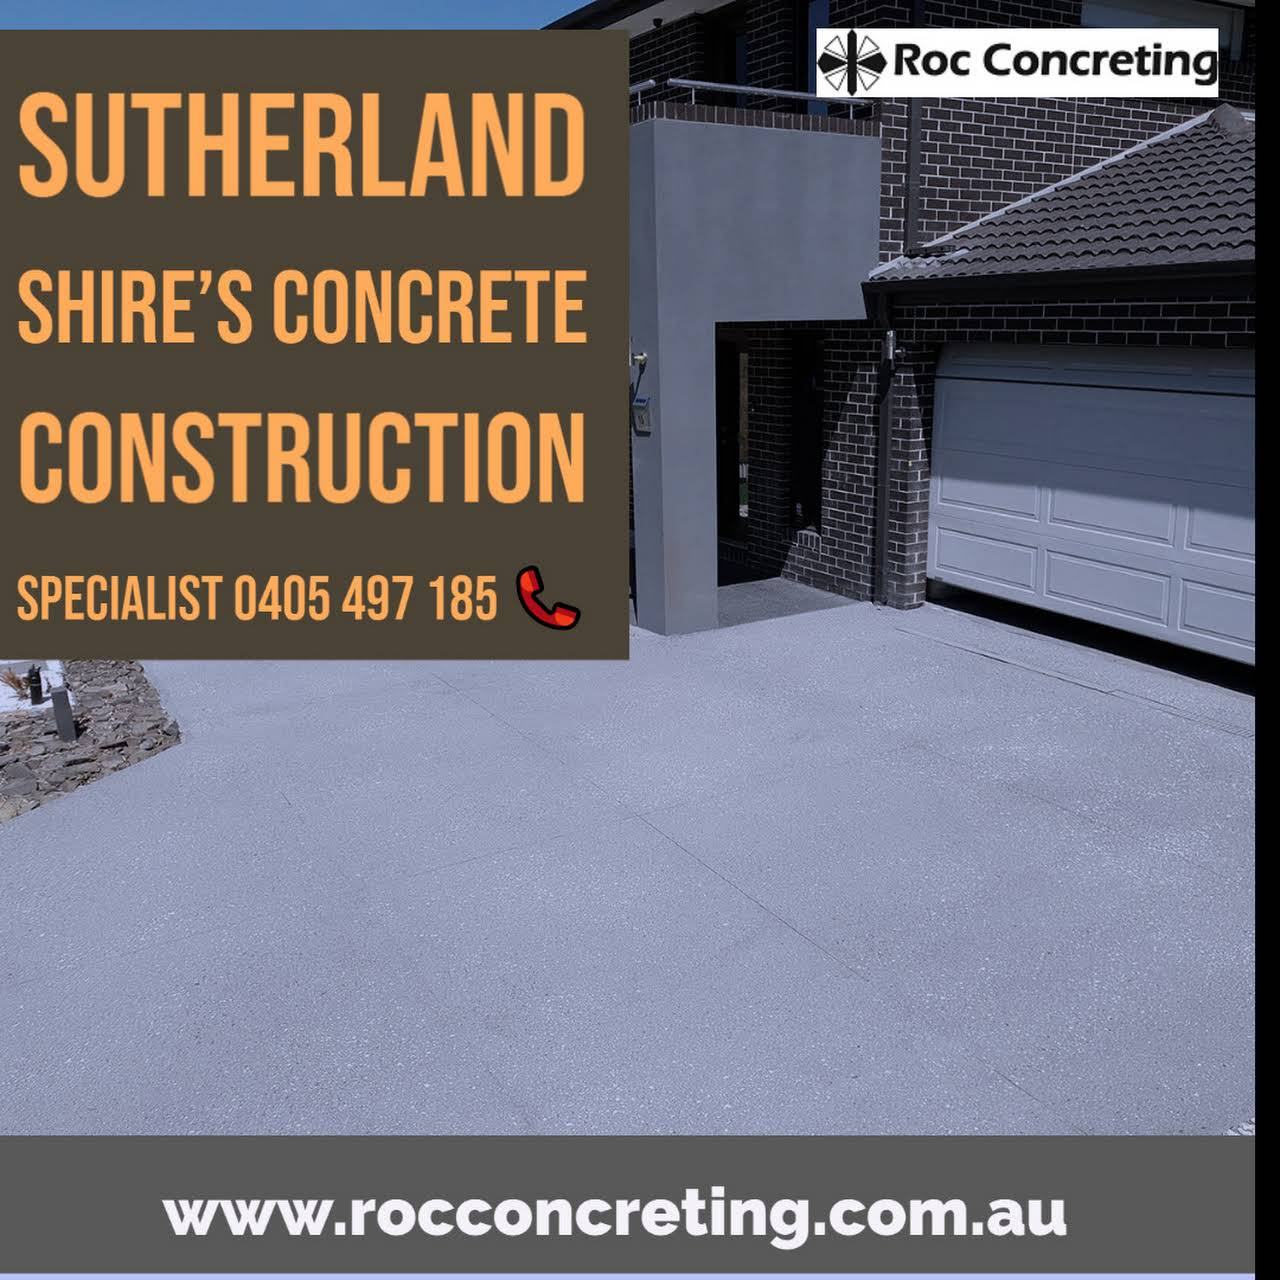 concreting in sutherland shirepicture shire nsw concretersimage shire concrete servicespicture